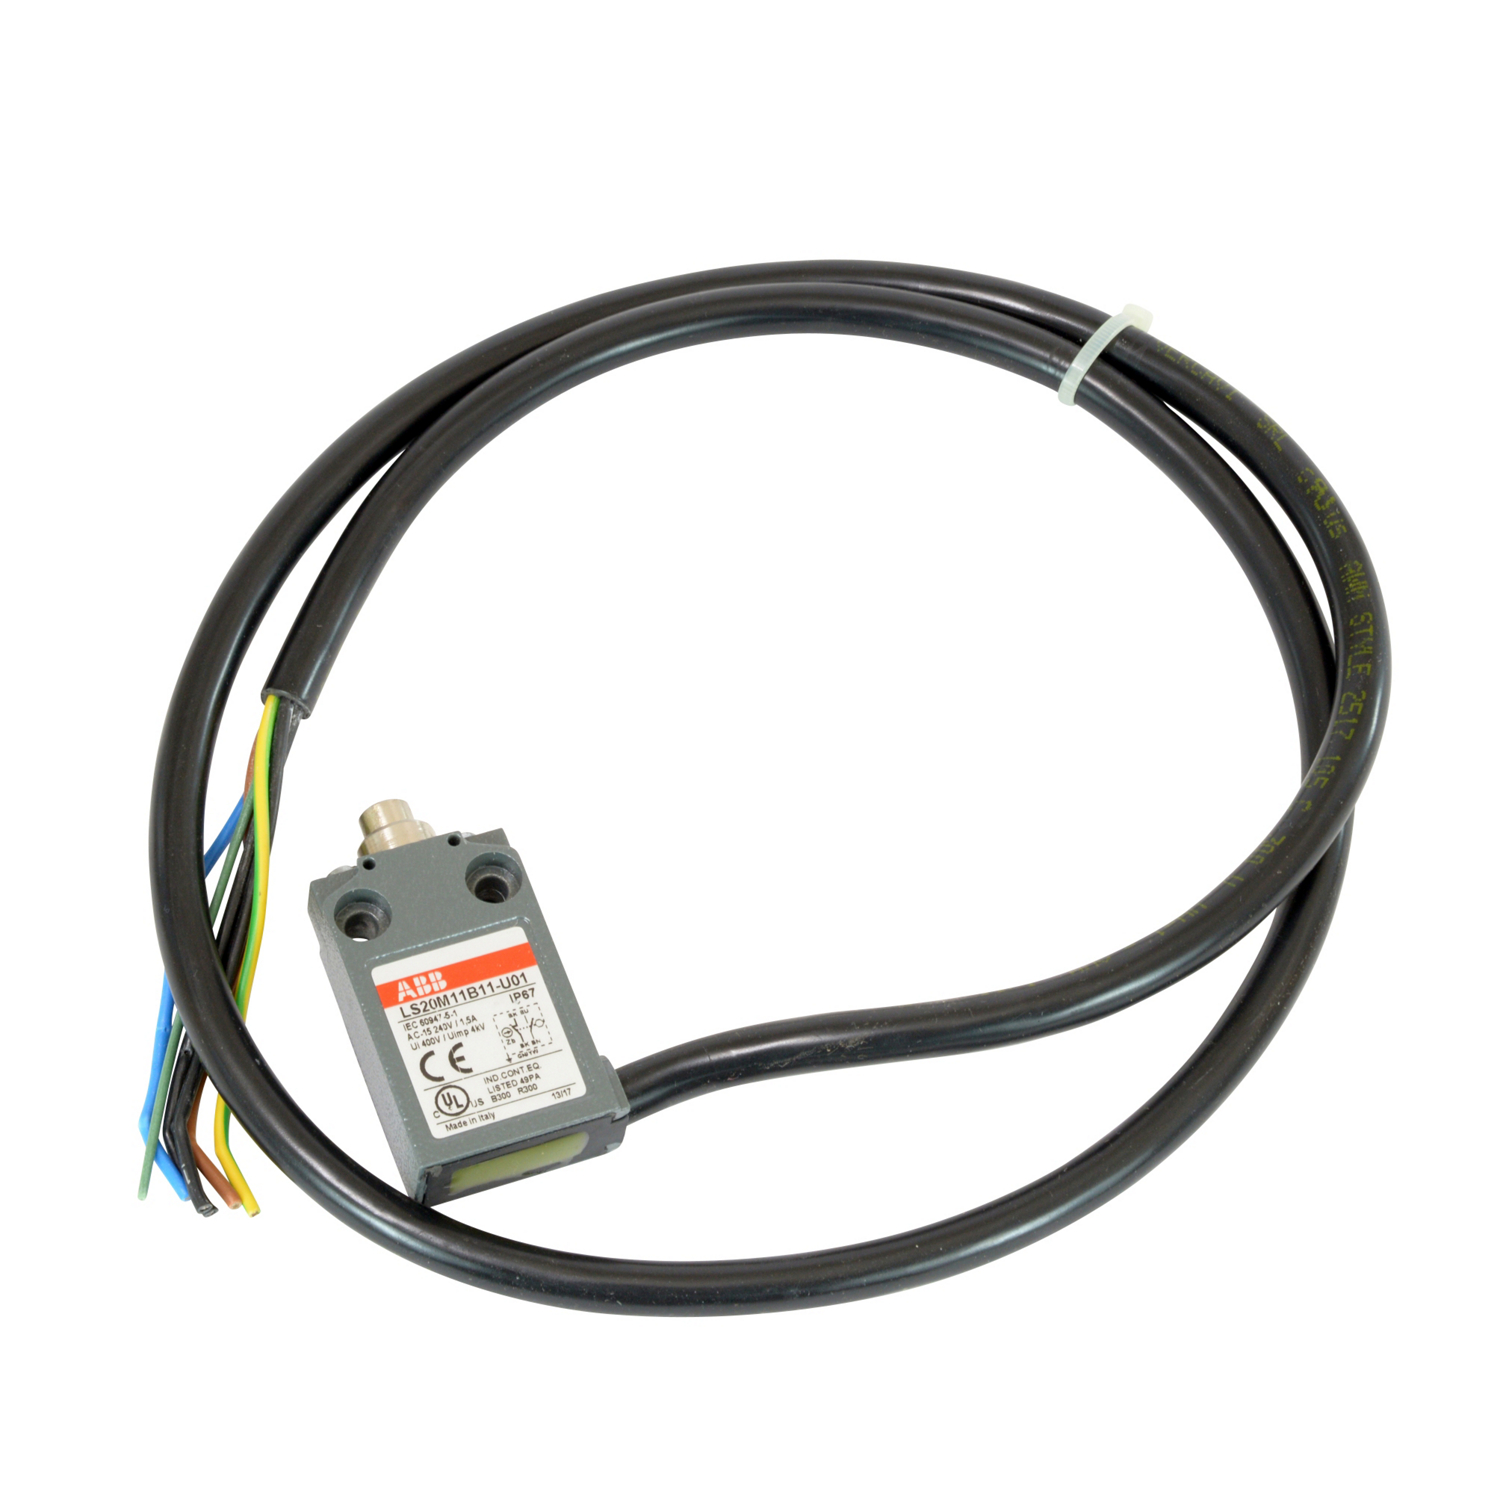 ABB LS20M11B11-U01 Limit Switch